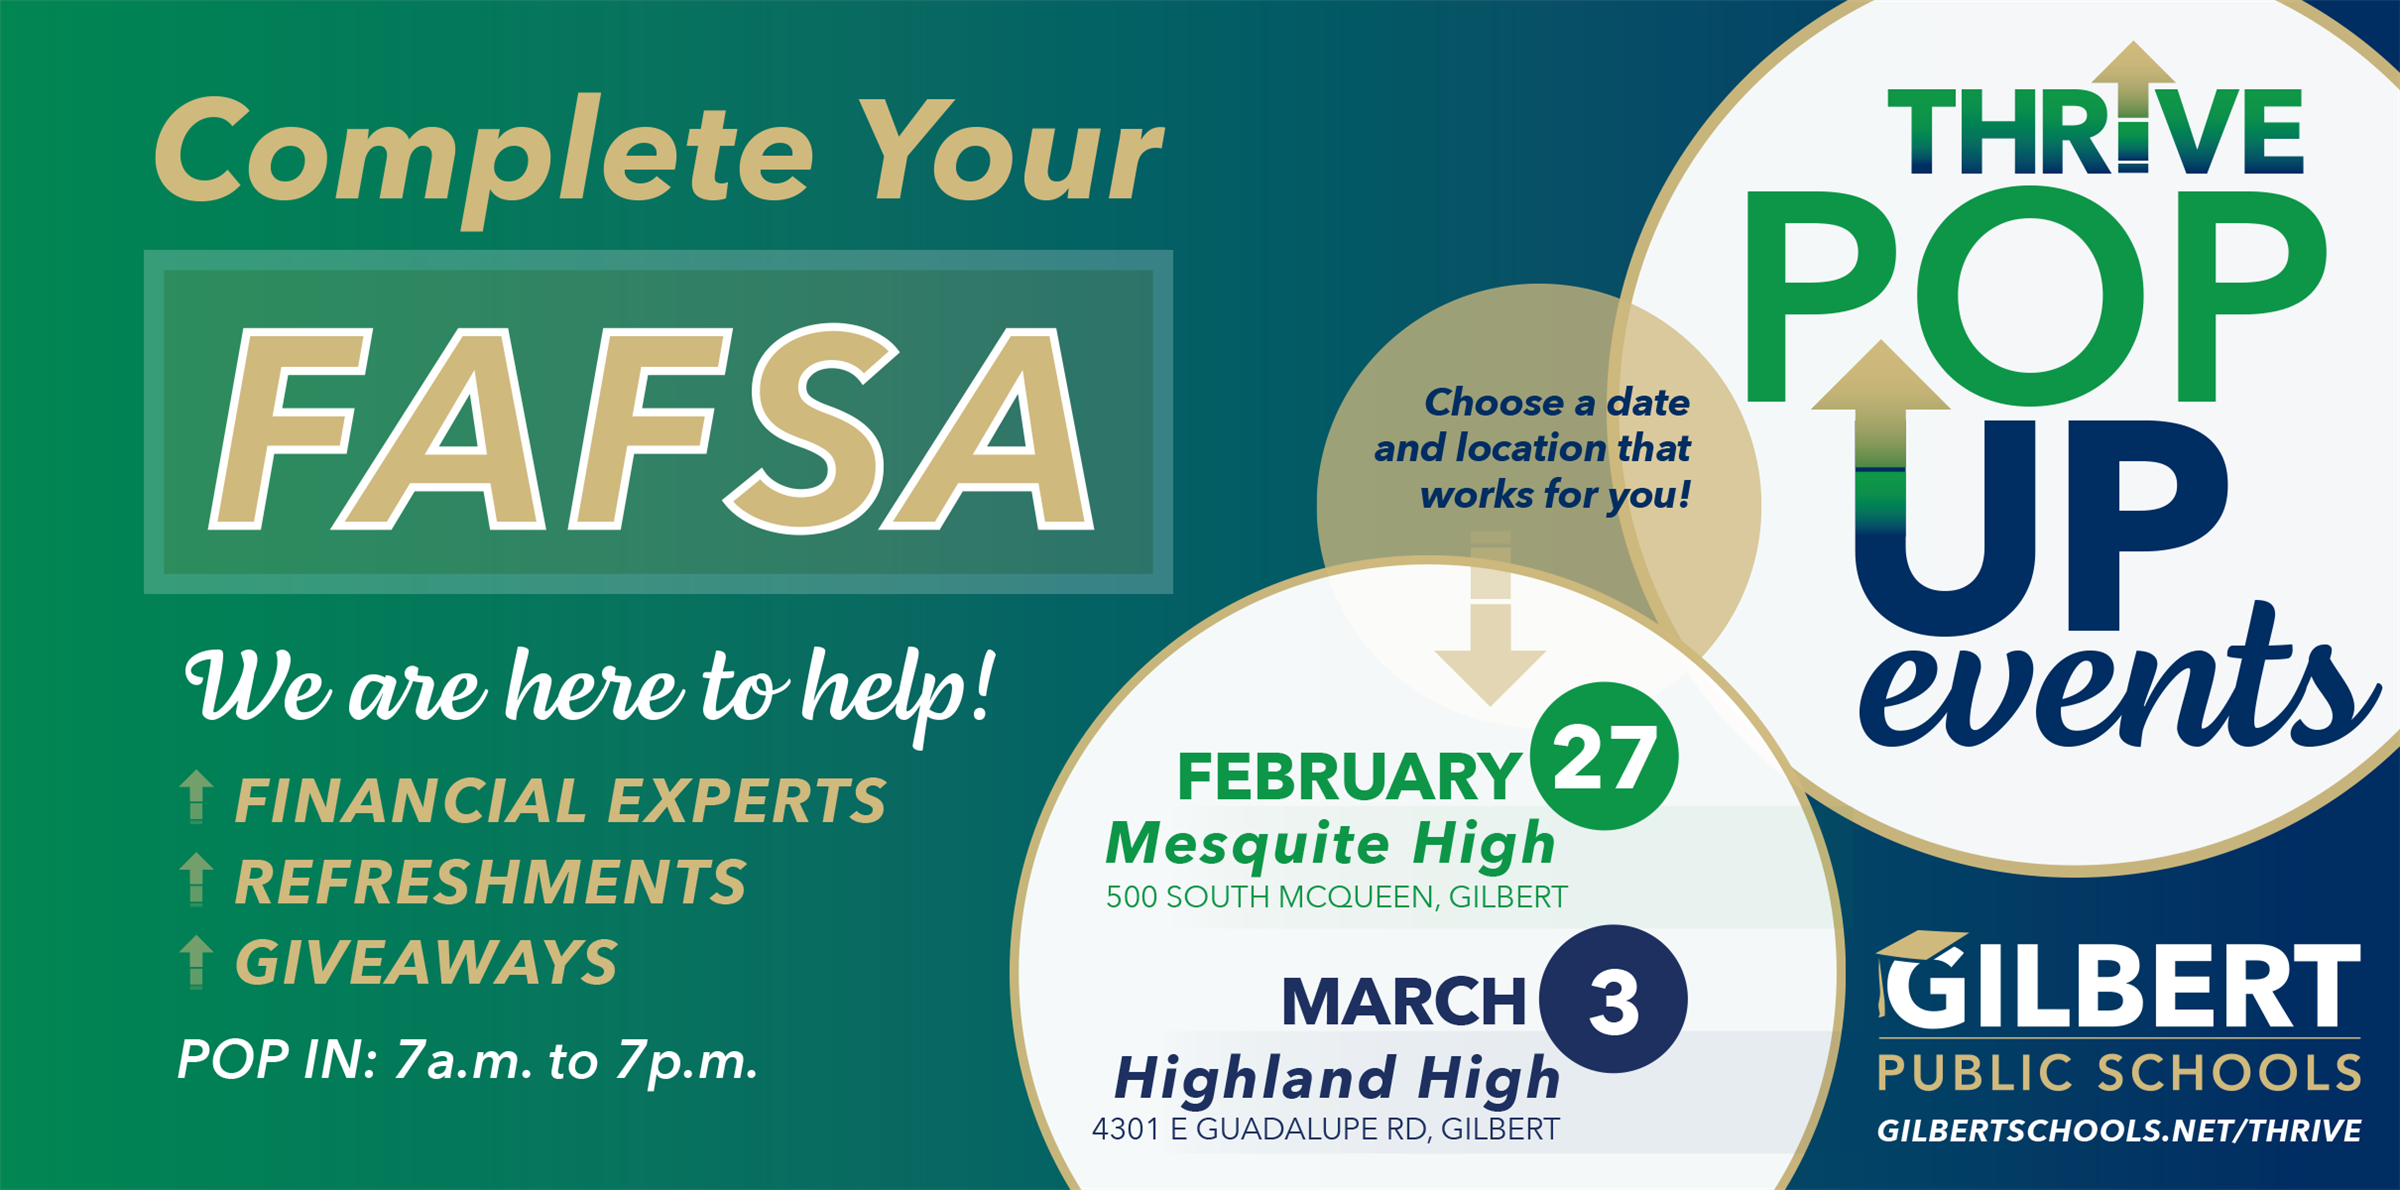 Complete Your FAFSA Nights Mesquite High Feb 27, Highland High March 3